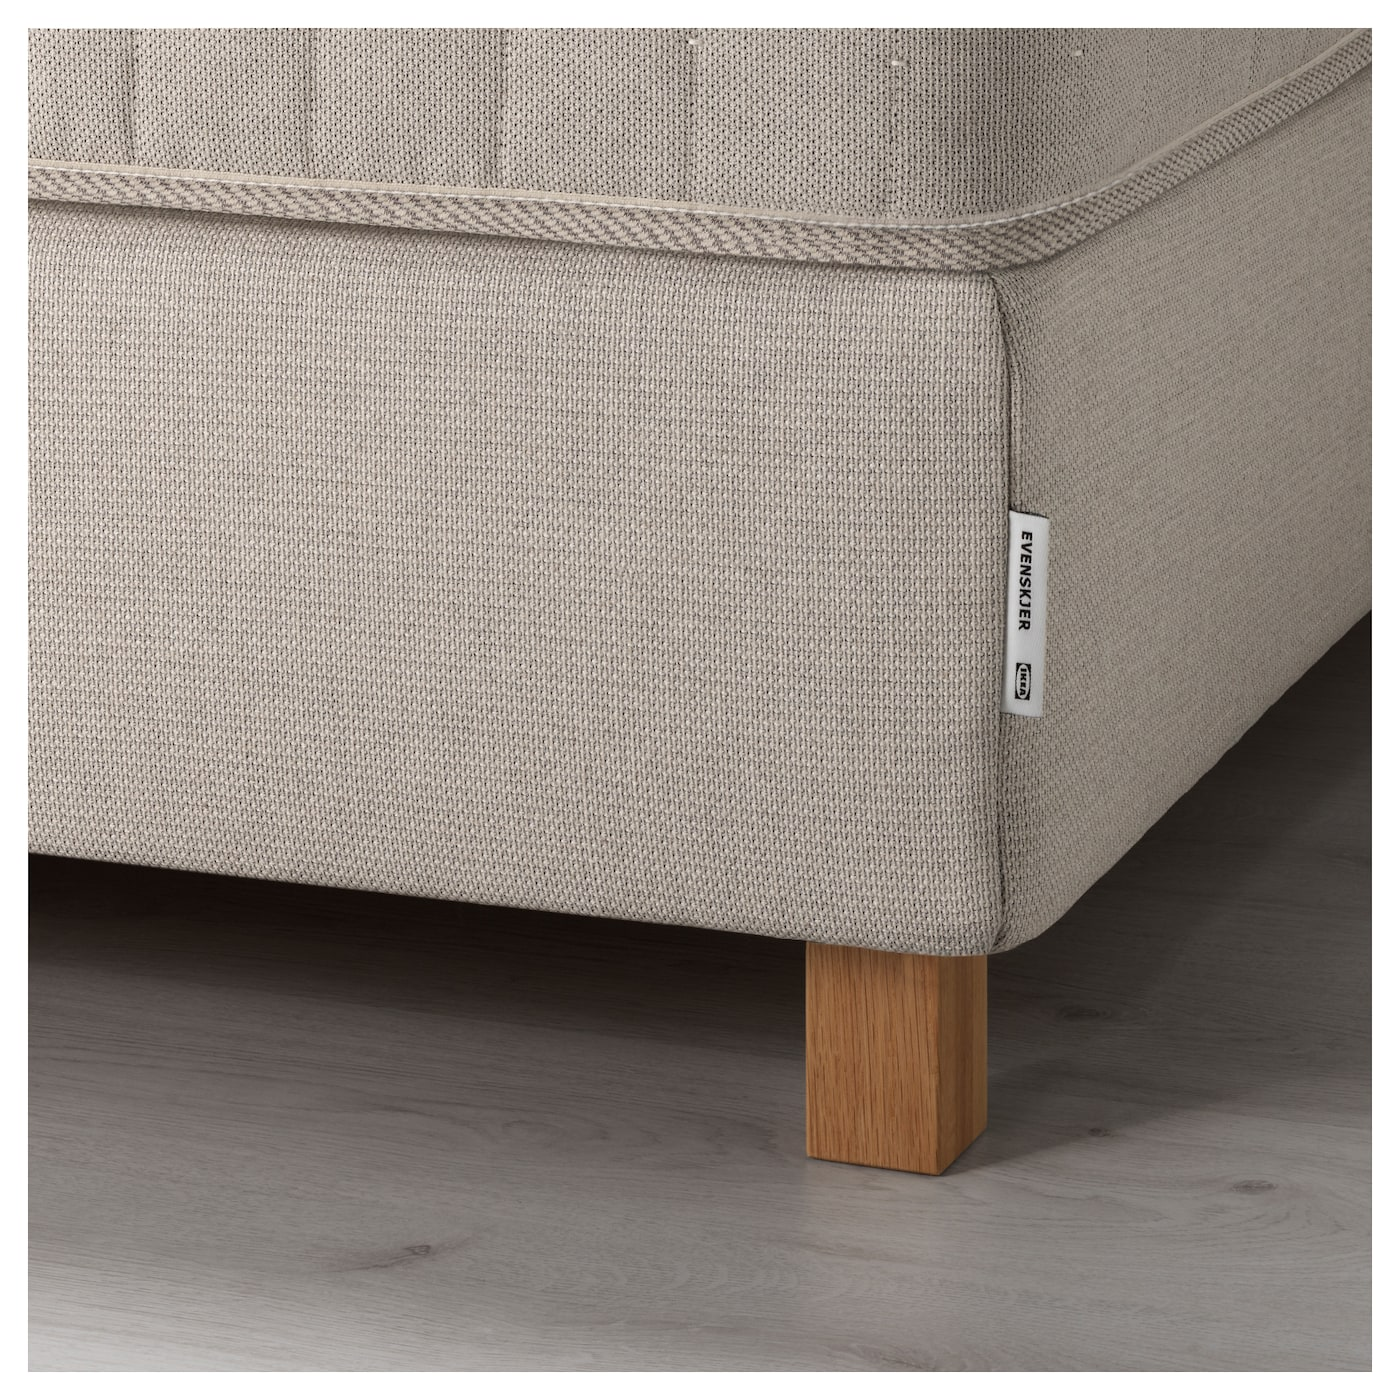 IKEA BEKKESTUA divan bed Pocket springs adjust to your body and keep your spine straight.